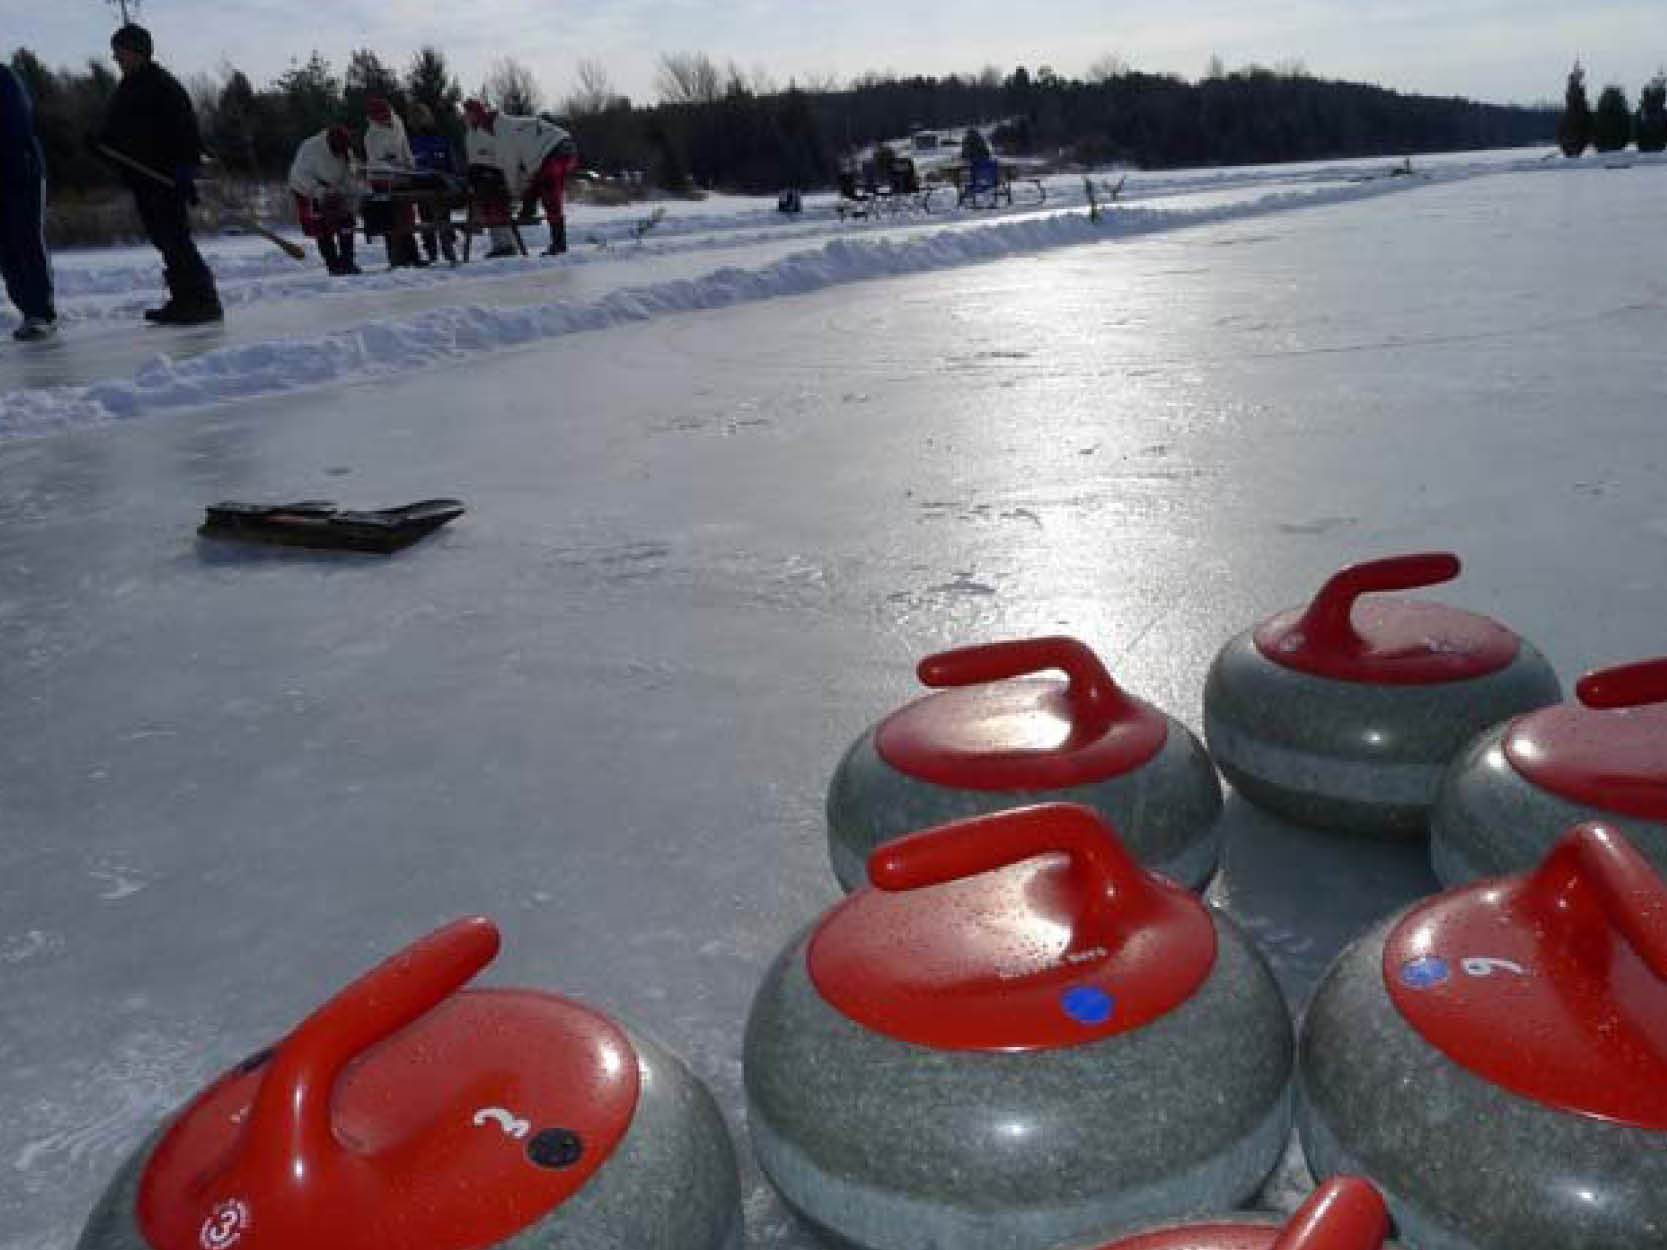 Curling stones on pond ice